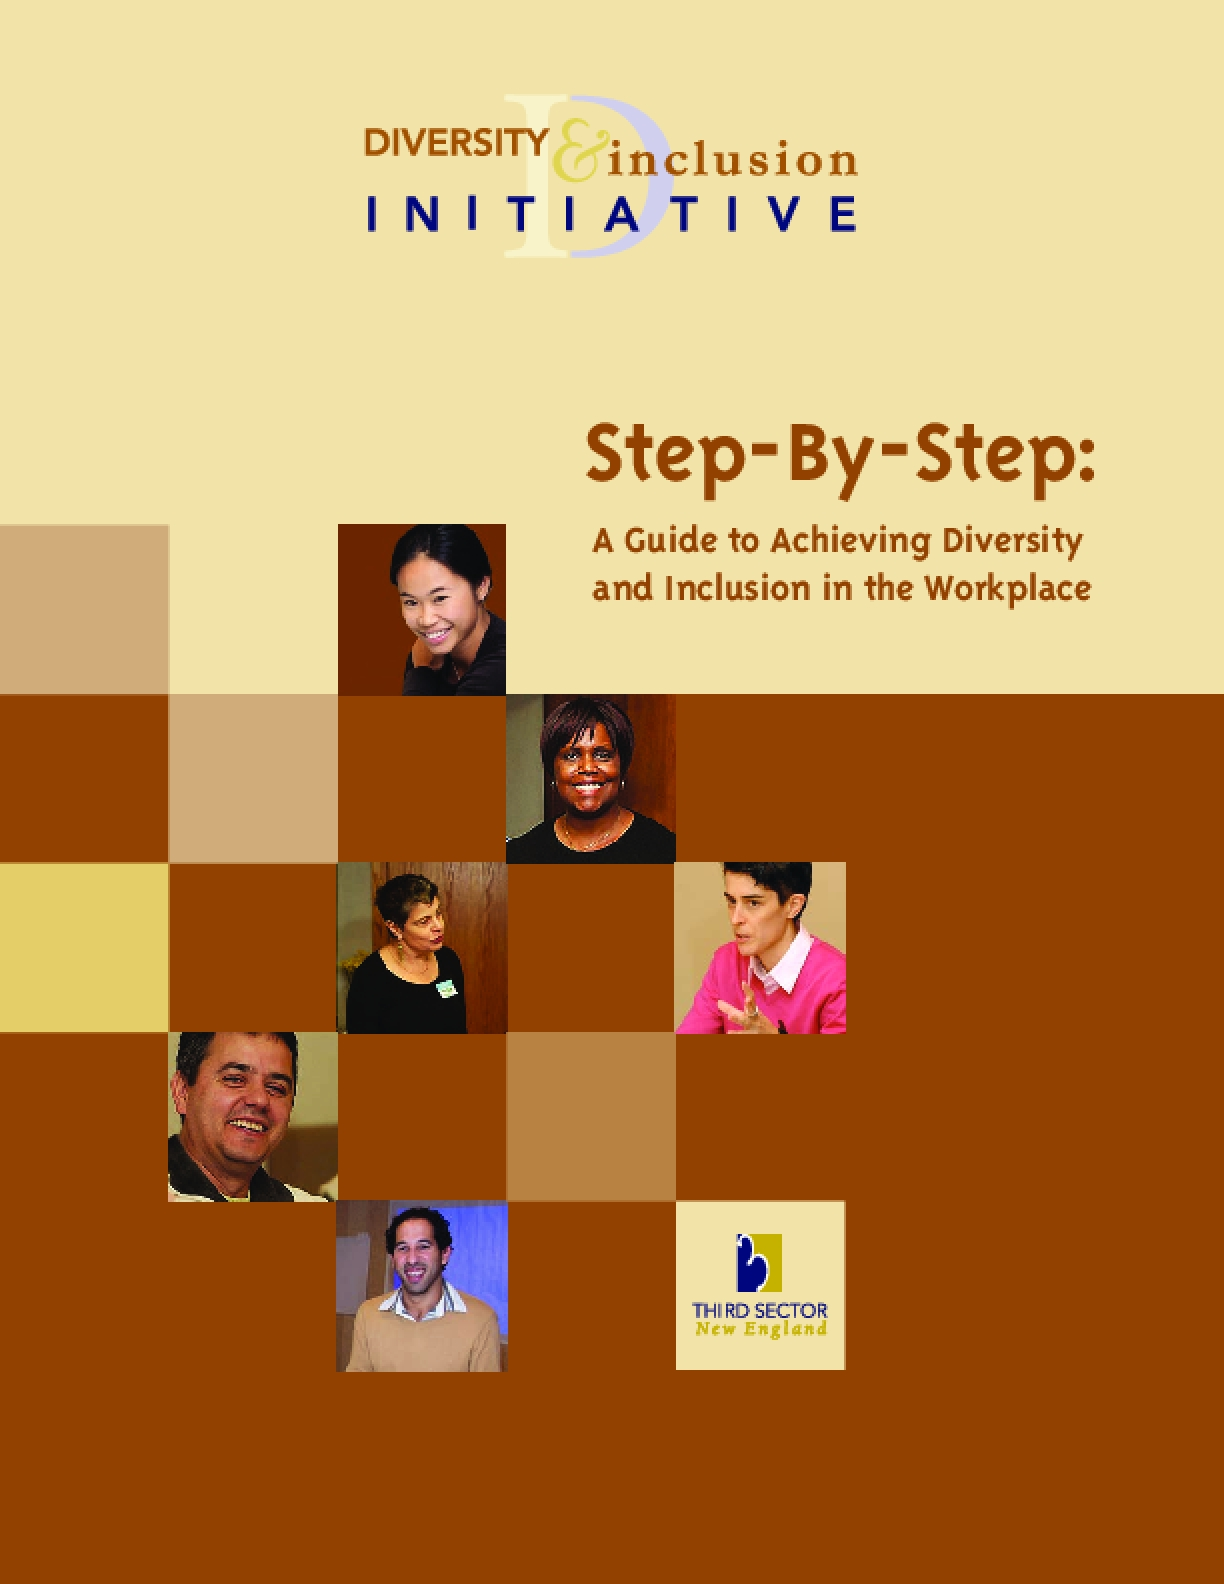 Step-By-Step : A Guide to Achieving Diversity and Inclusion in the Work Place